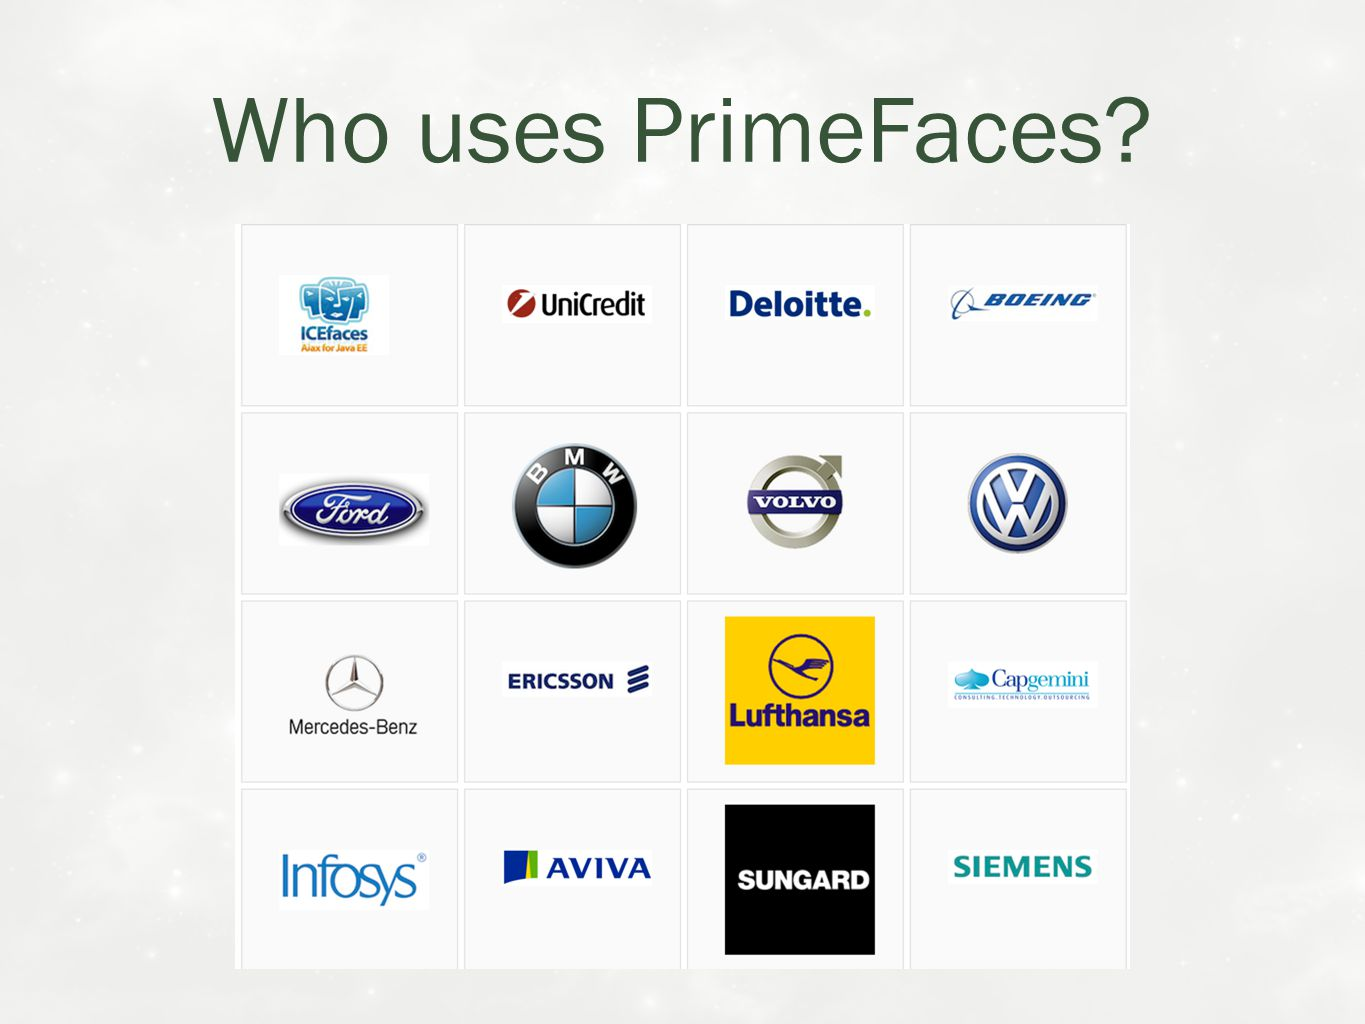 Who uses PrimeFaces